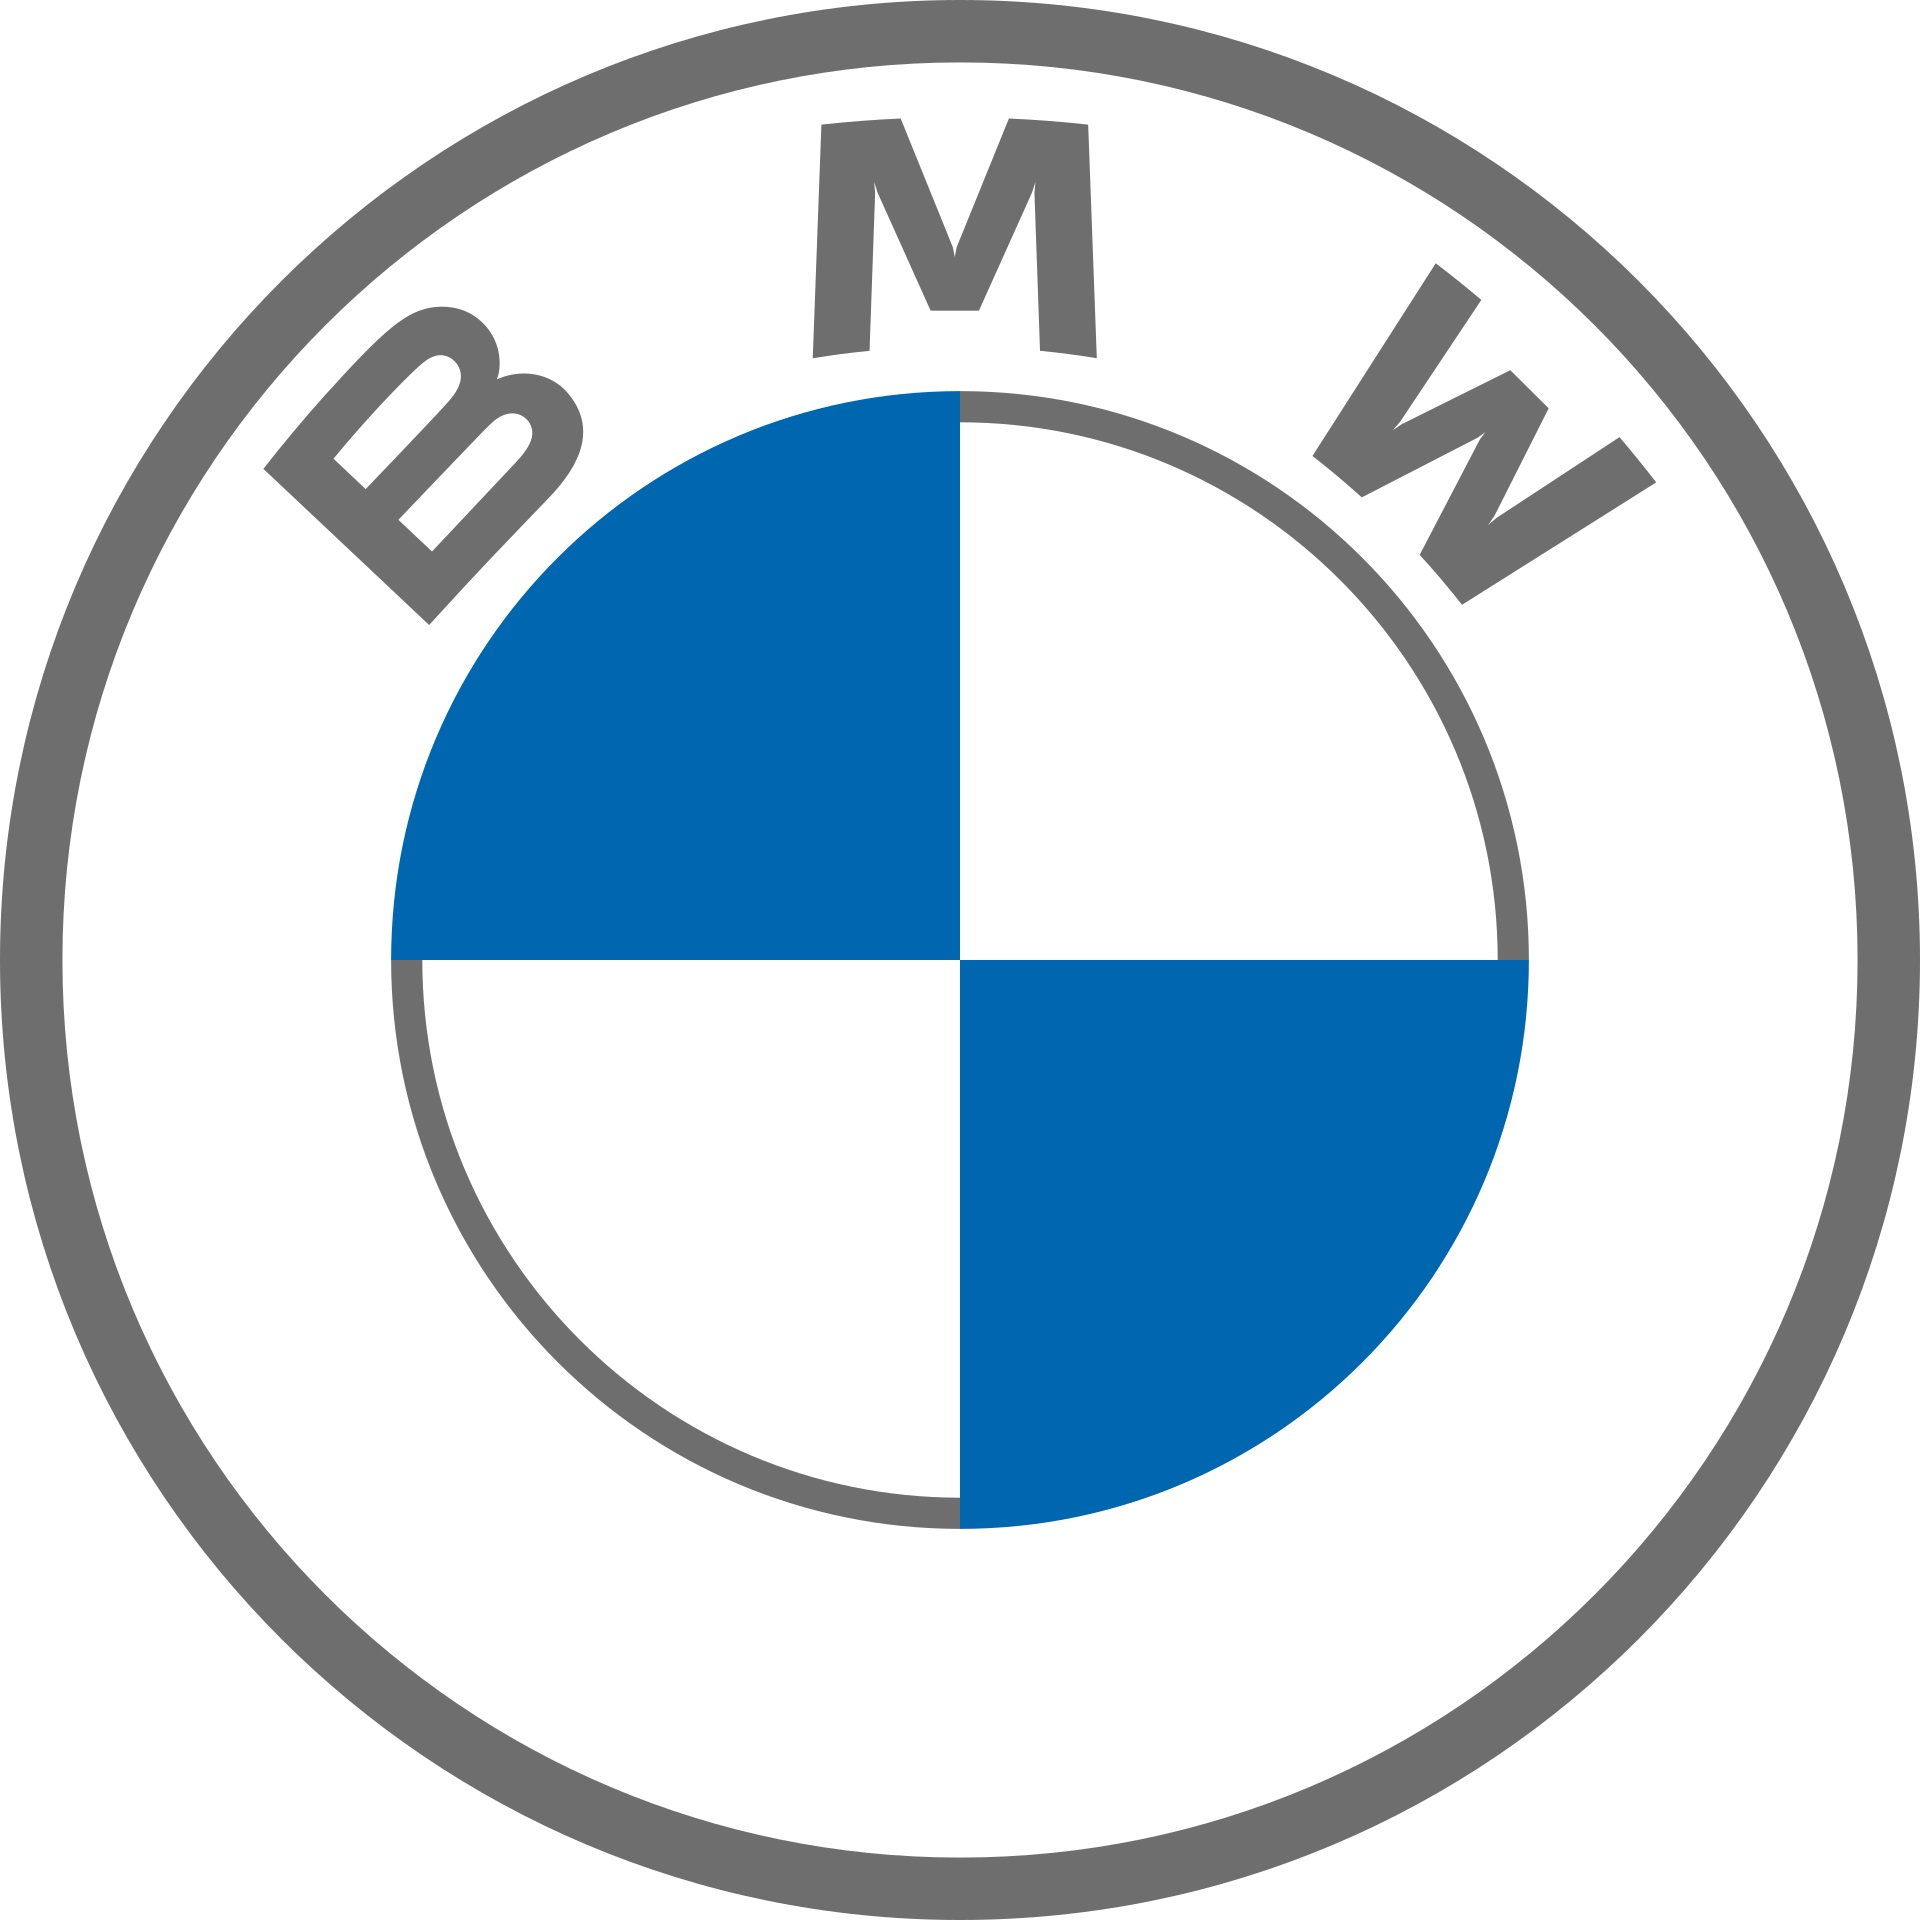 Bmw New Logo 2020 2906925 Hd Wallpaper Backgrounds Download